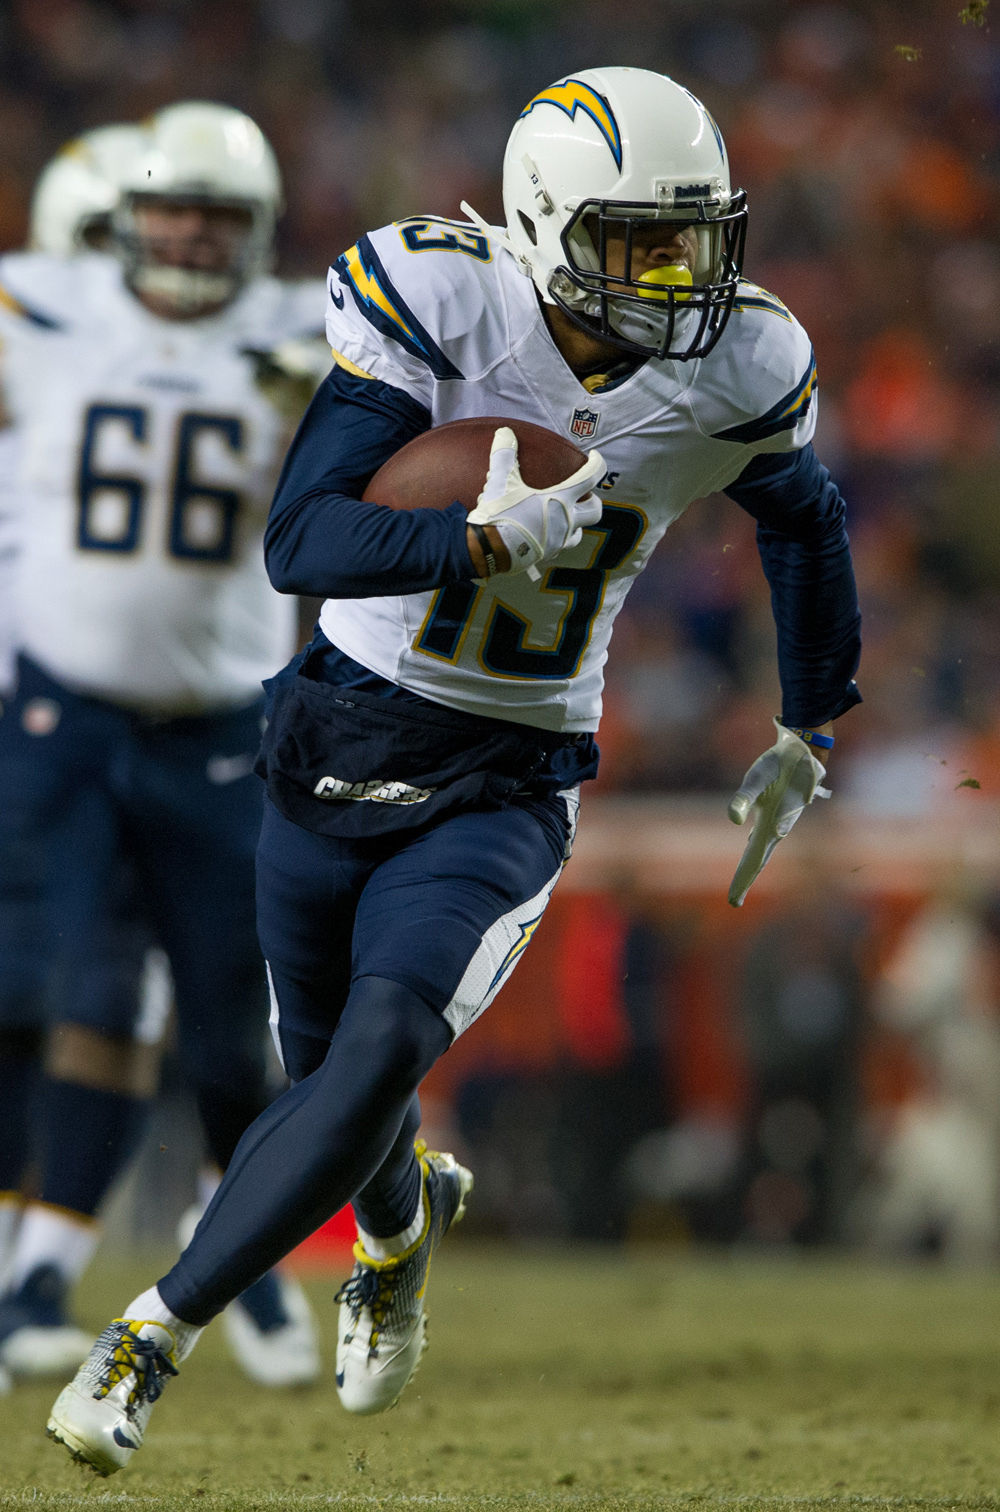 Chargers 27, Broncos 20